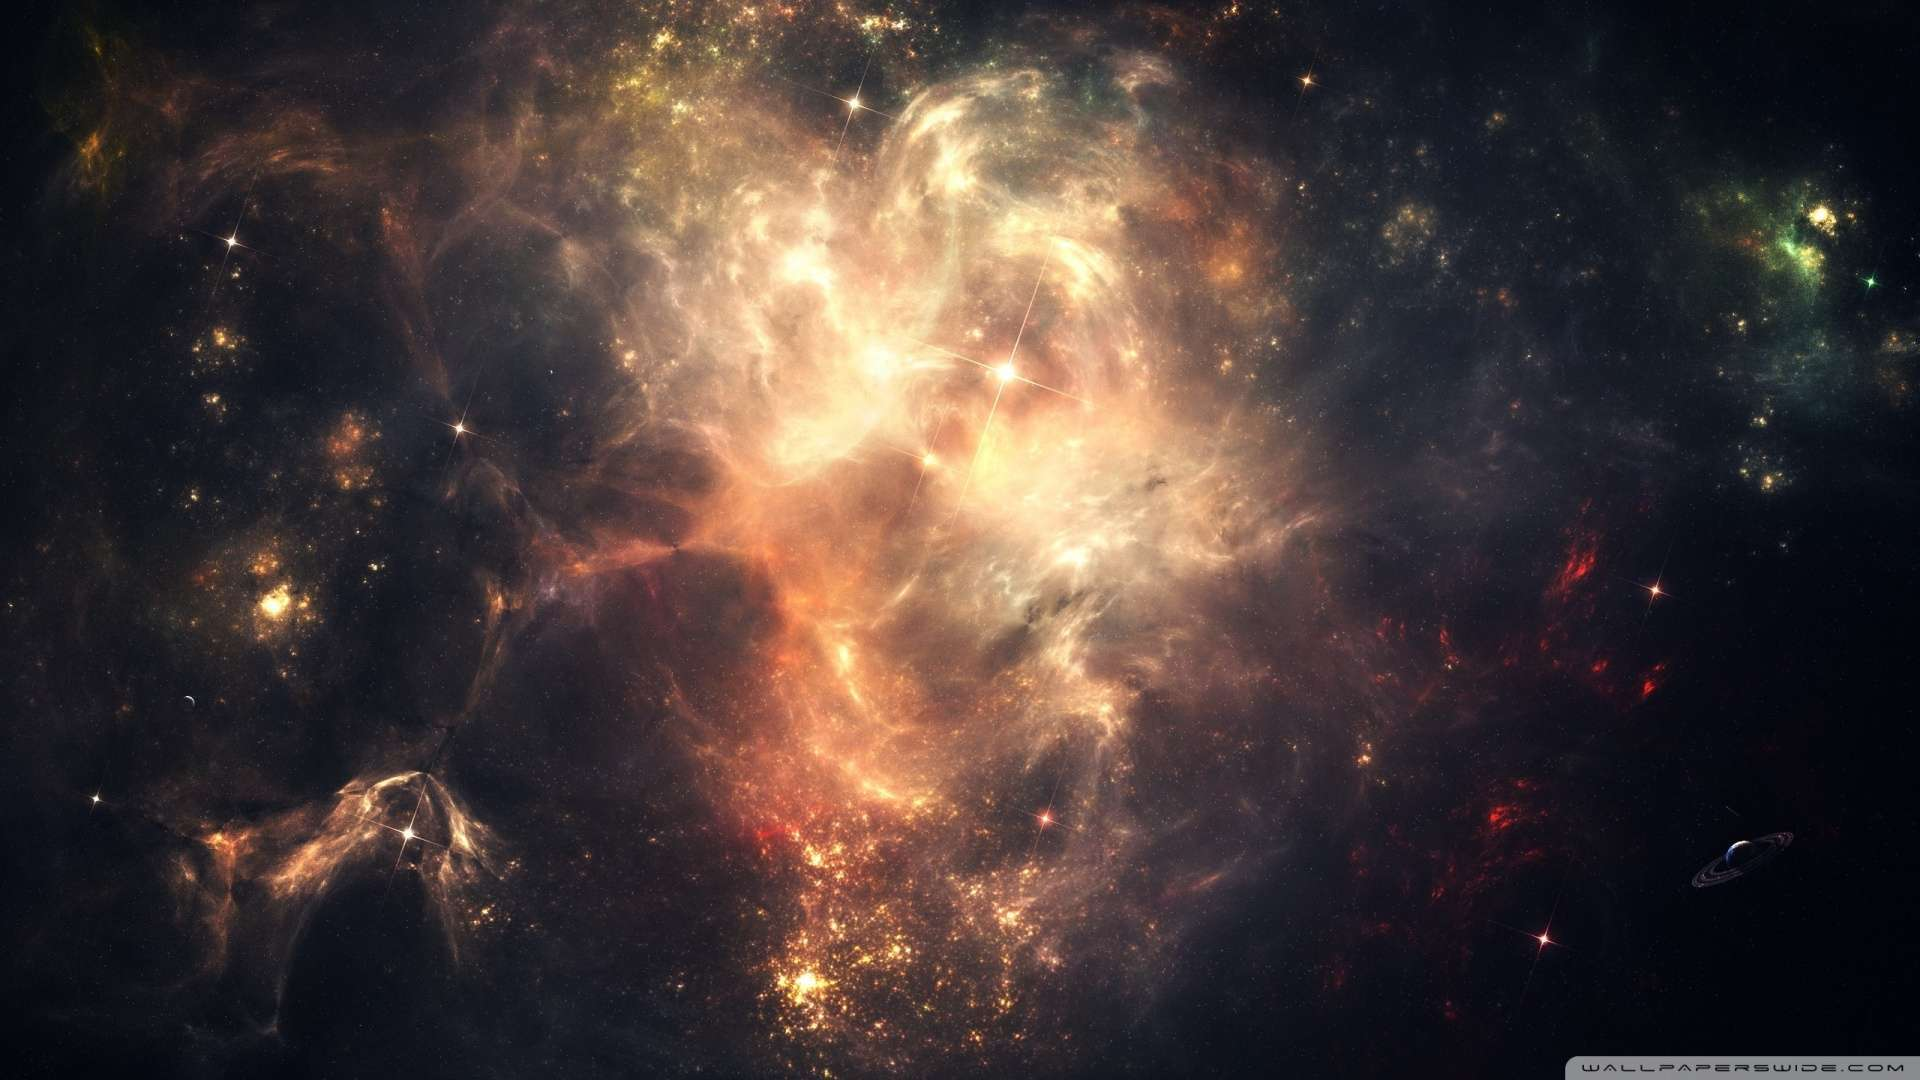 Wallpaper Outer Space Nebulae Wallpaper 1080p HD Upload at February 1920x1080